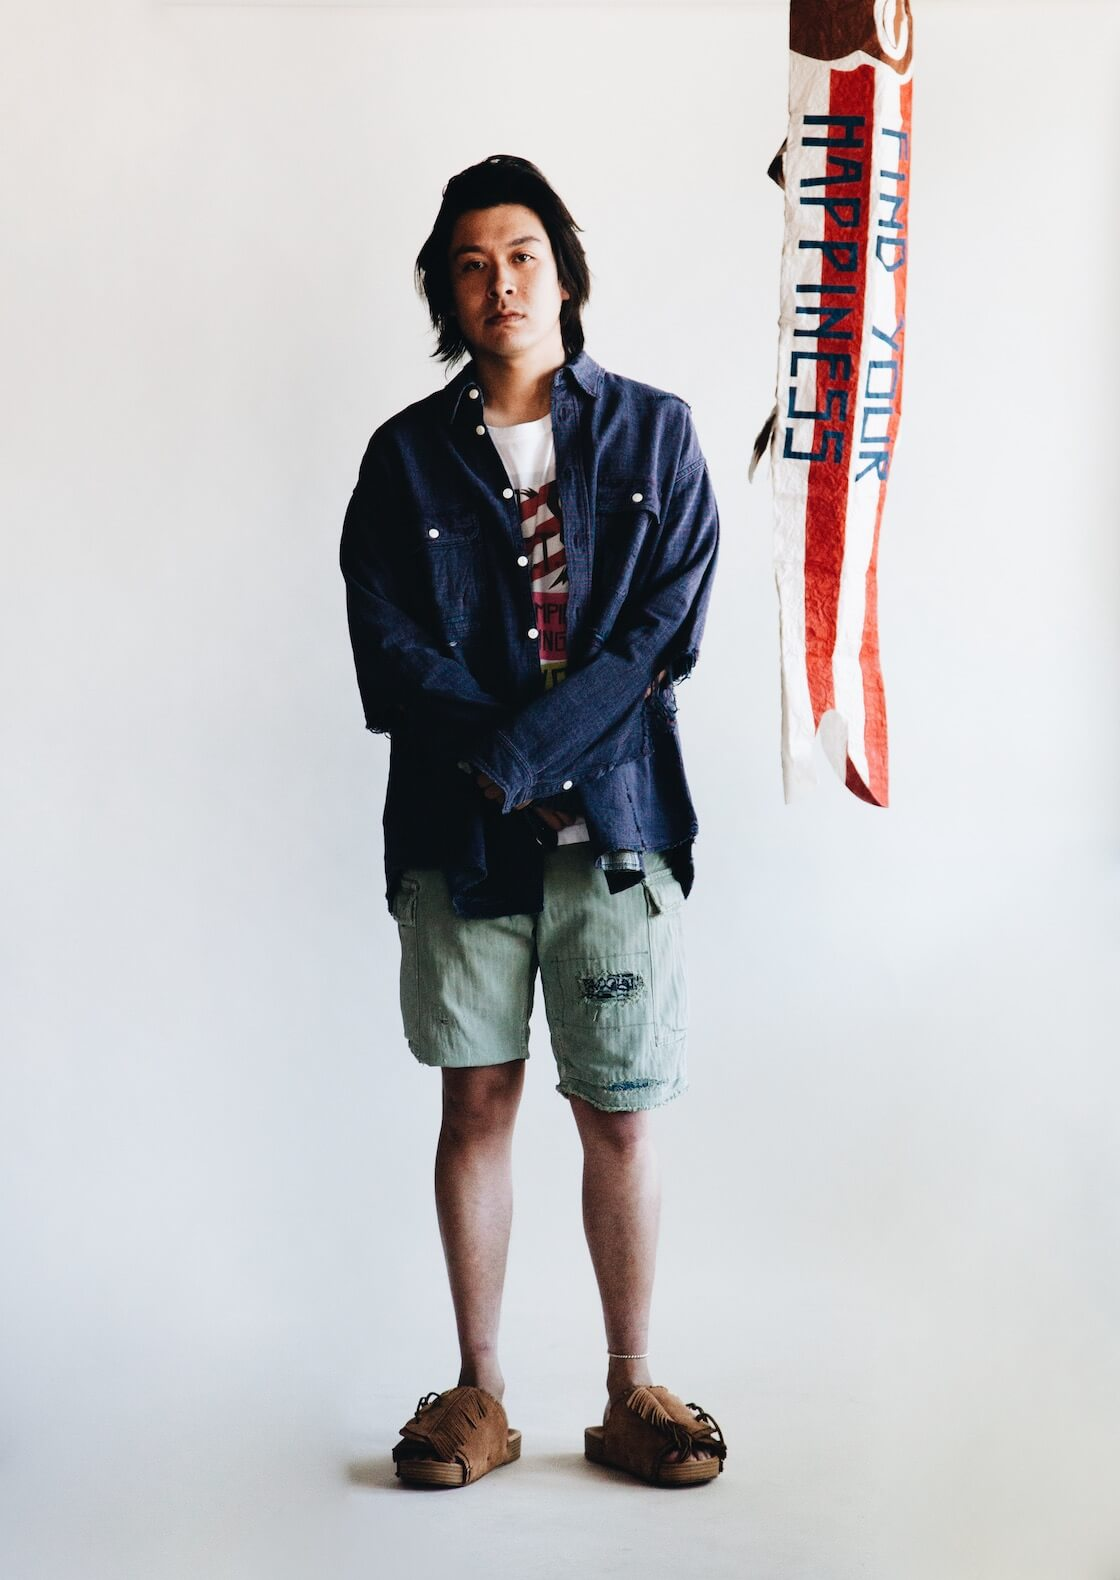 visvim indigo camping trading post find your happiness Ground River L/S Crash Shirt, Jumbo Tee, Jumbo Eiger Sanction Shorts and Christo Sandals on body